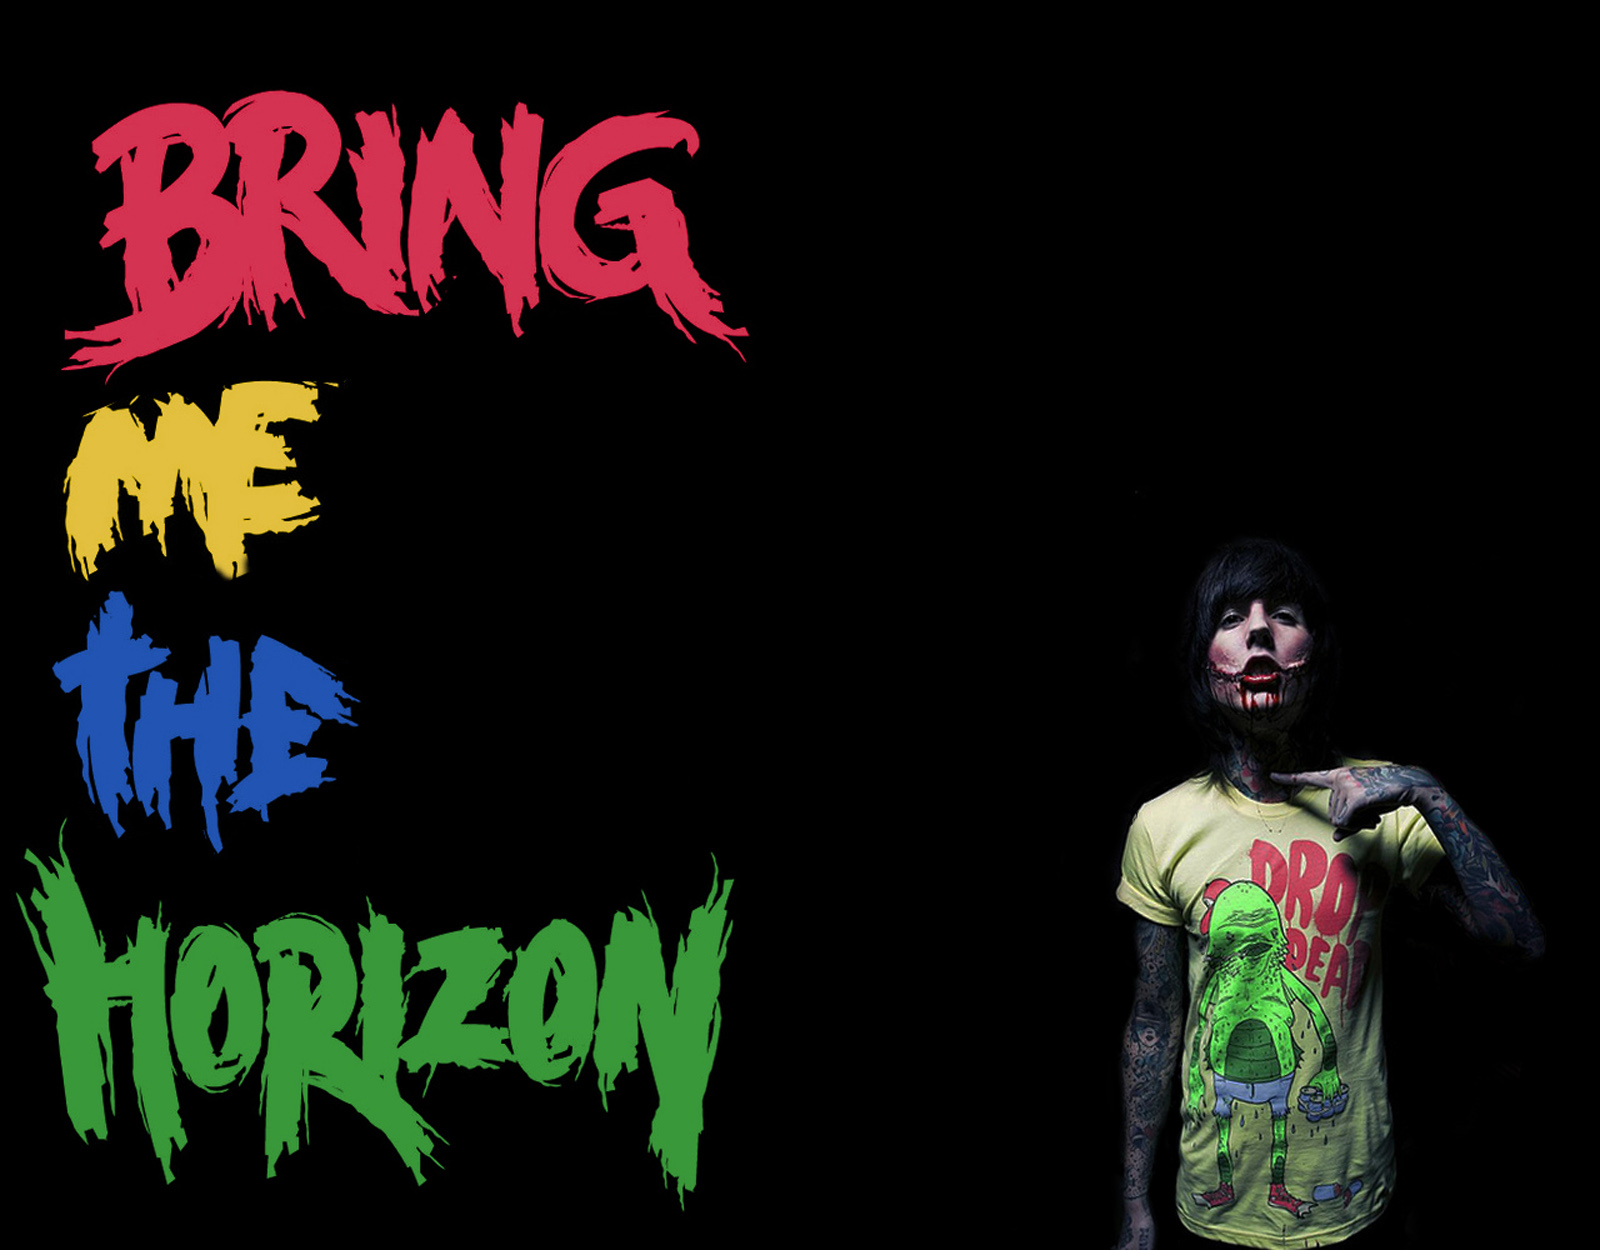 Central Wallpaper: Bring Me The Horizon (BMTH) HD Wallpapers